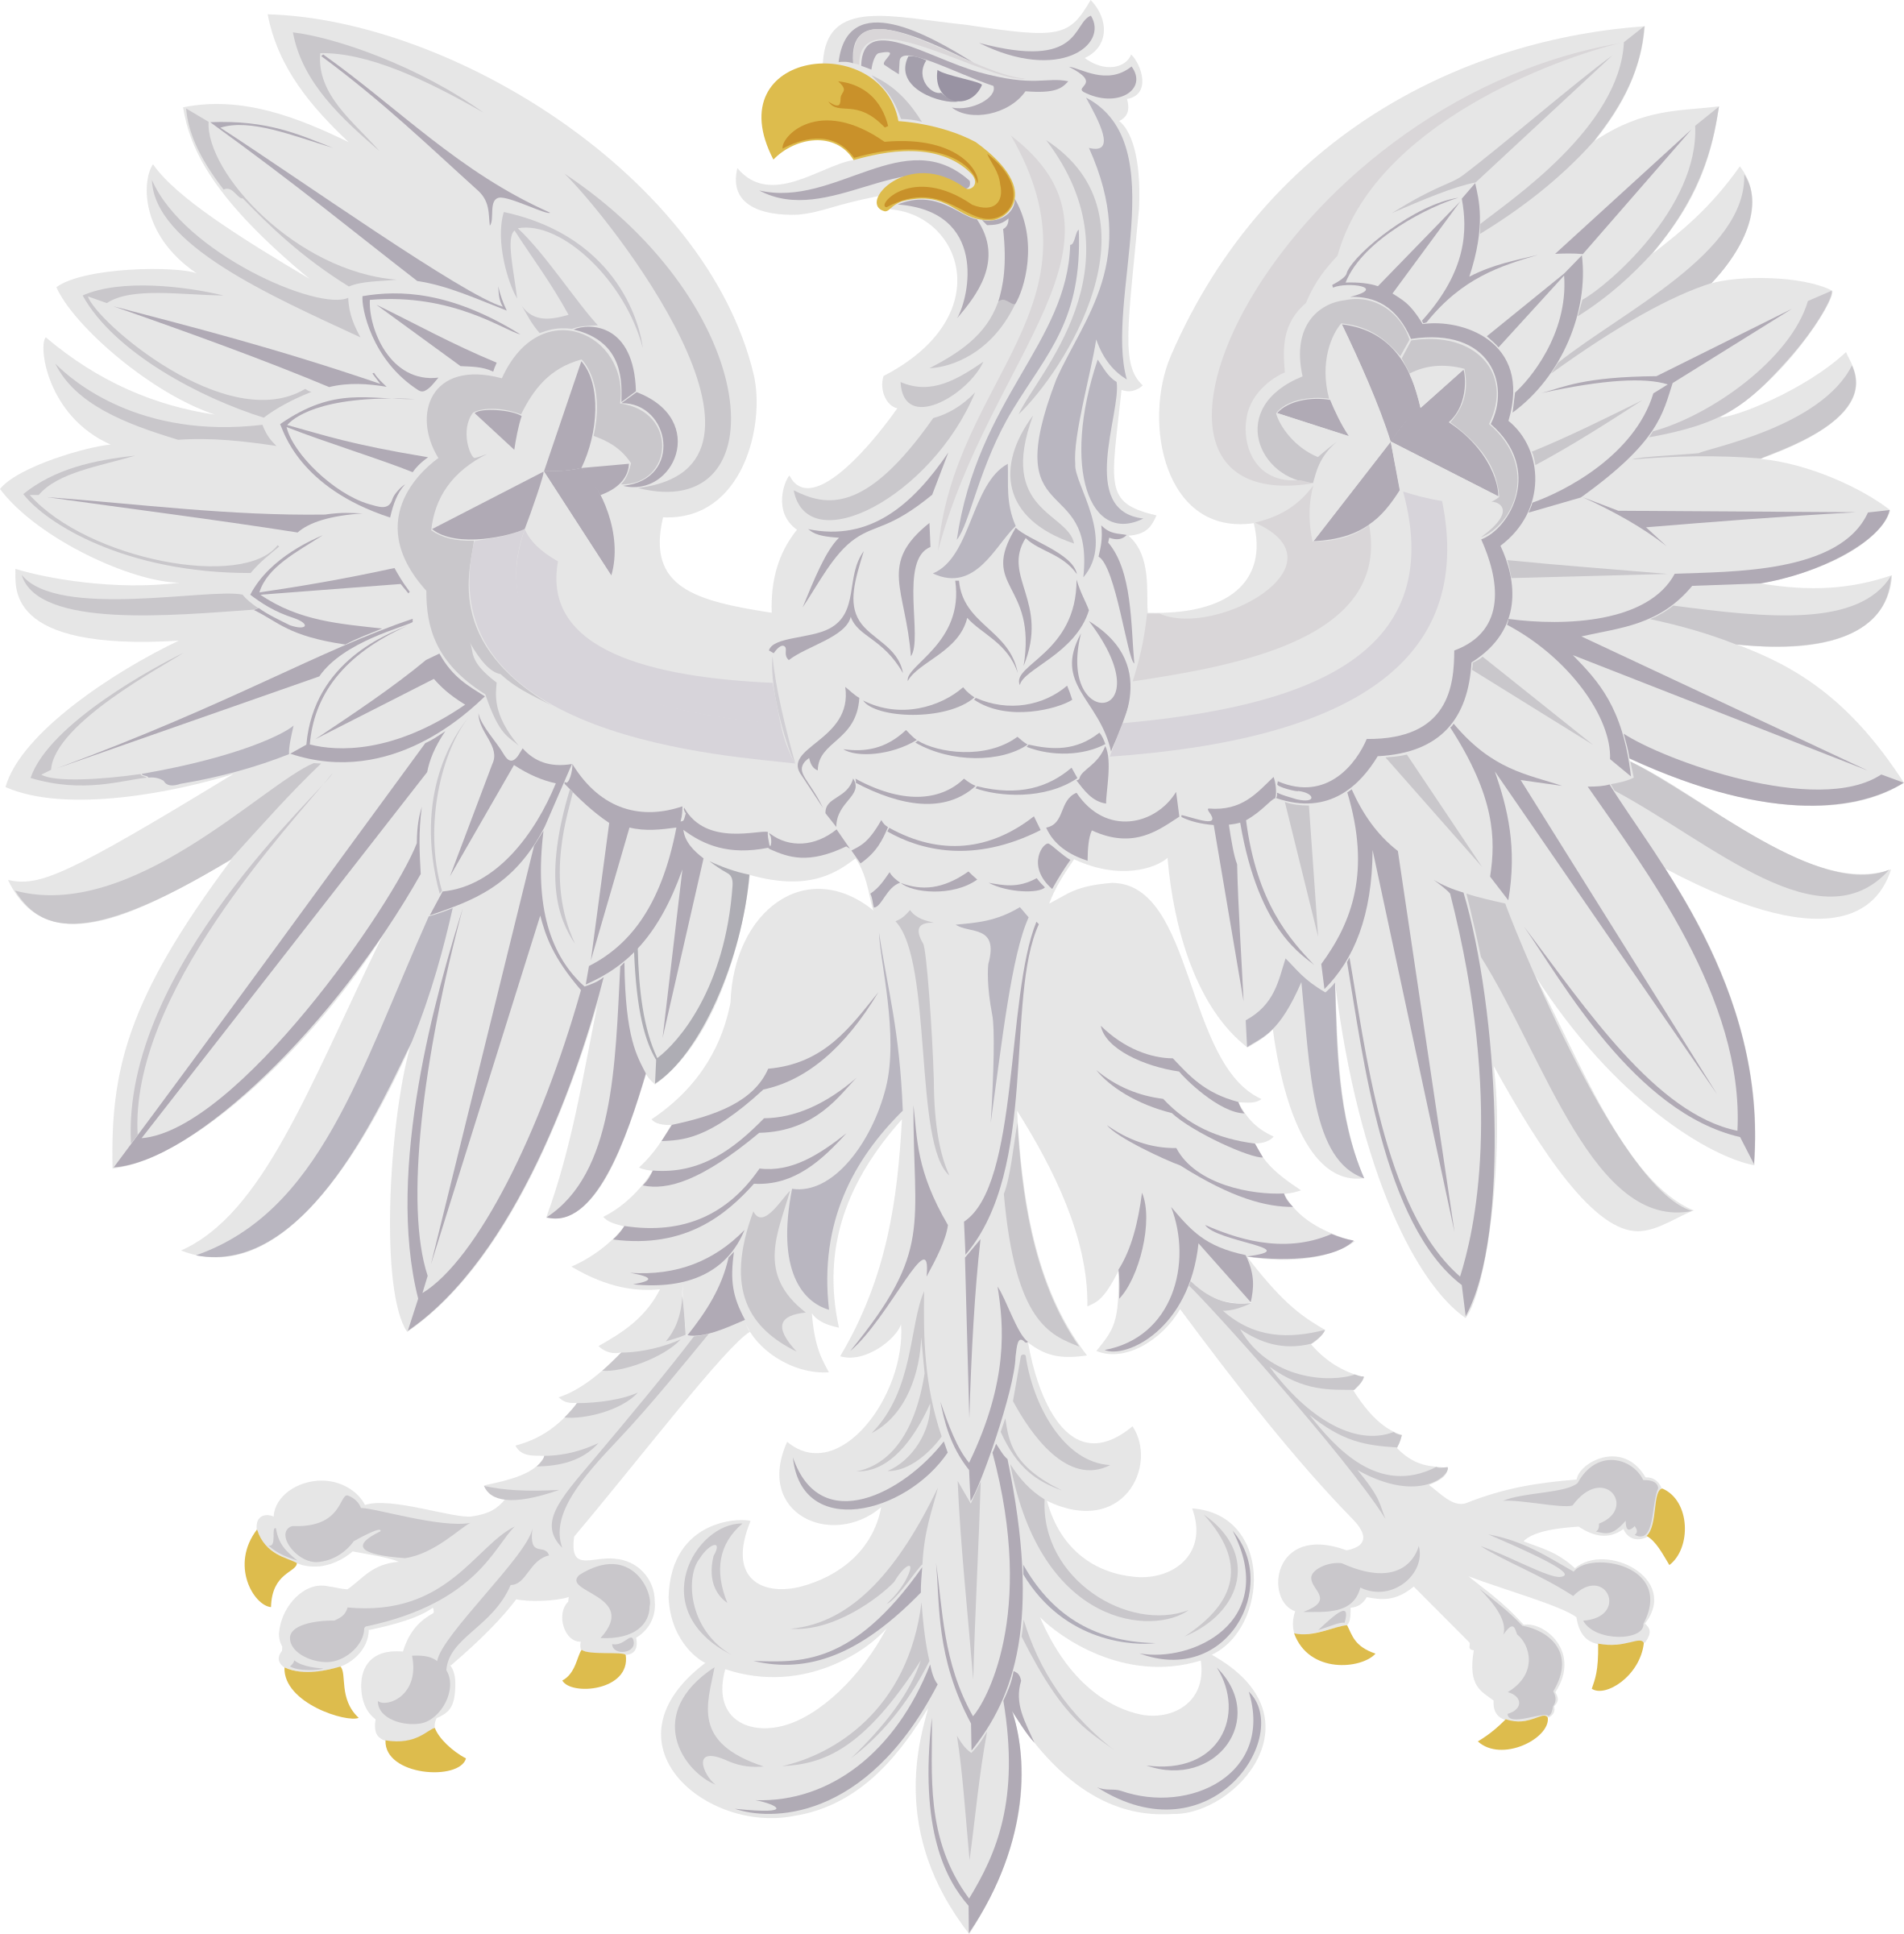 Stylised eagle 4 by Firkin